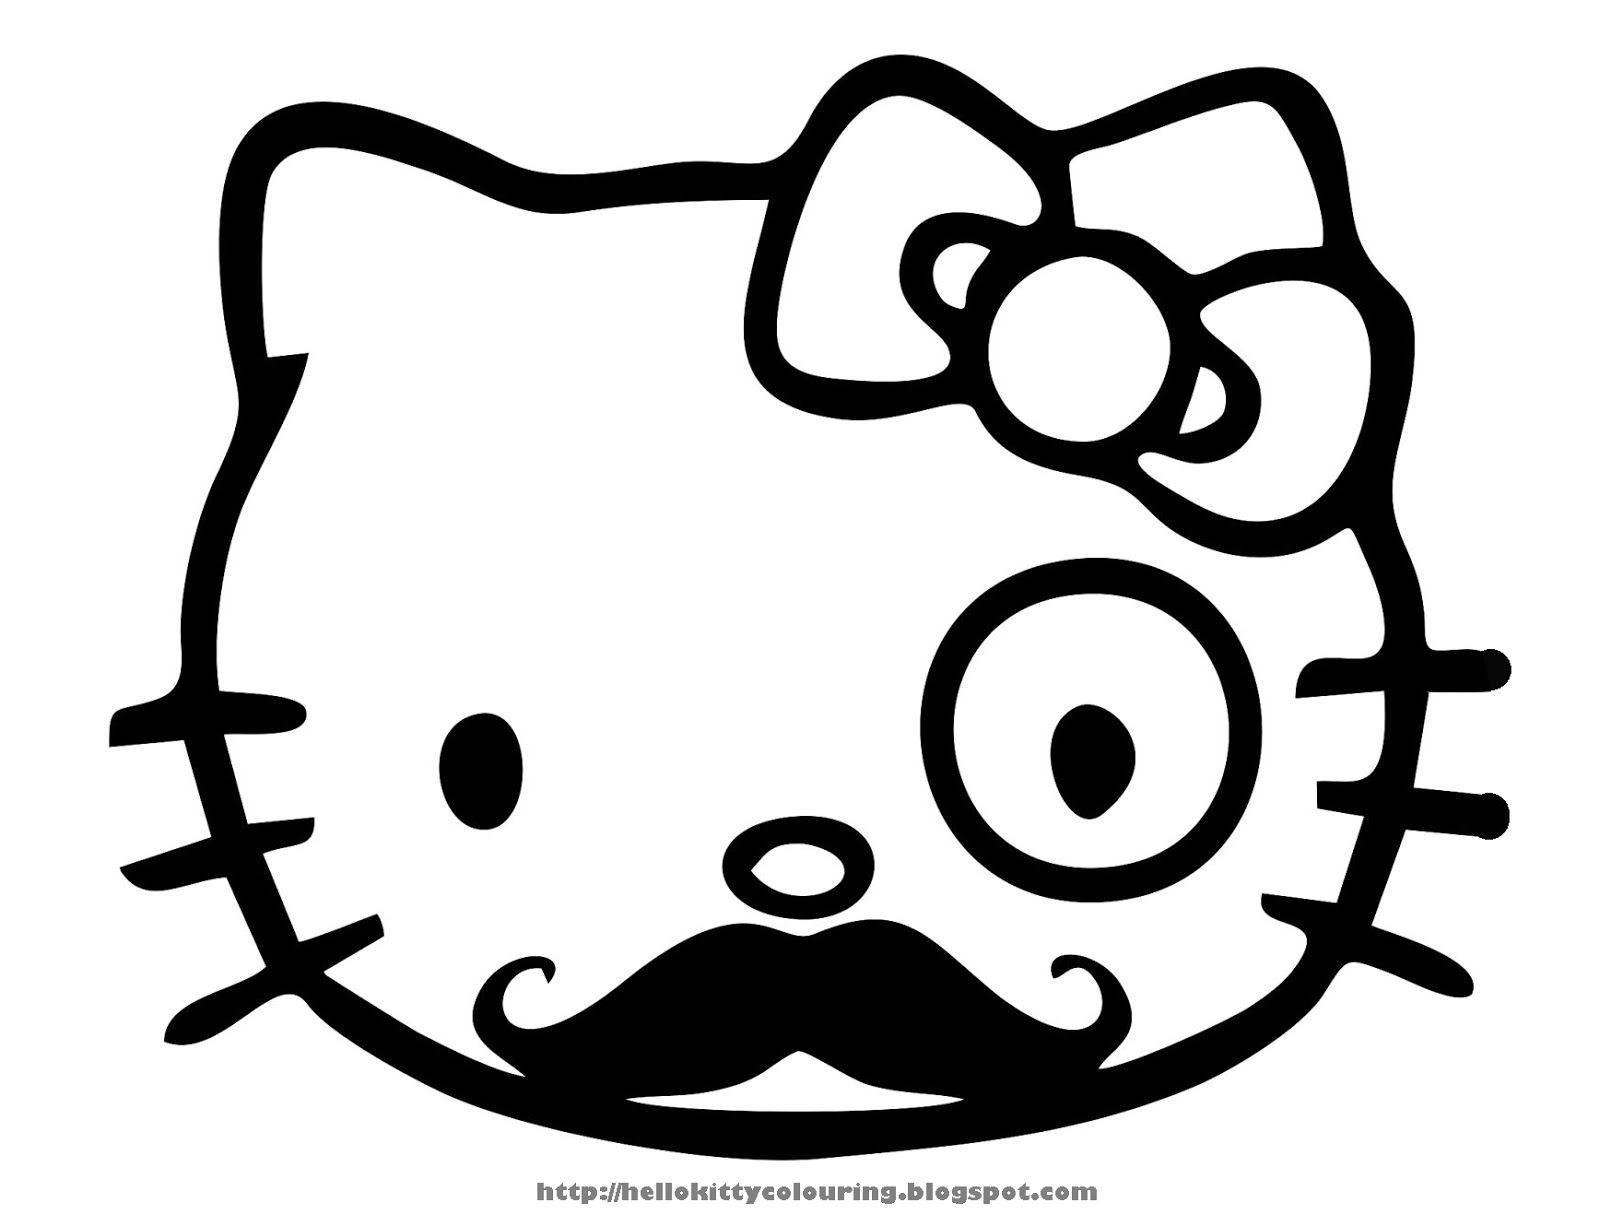 Hello Kitty Kitchen Coloring Pages : Hello kitty kitchen coloring page